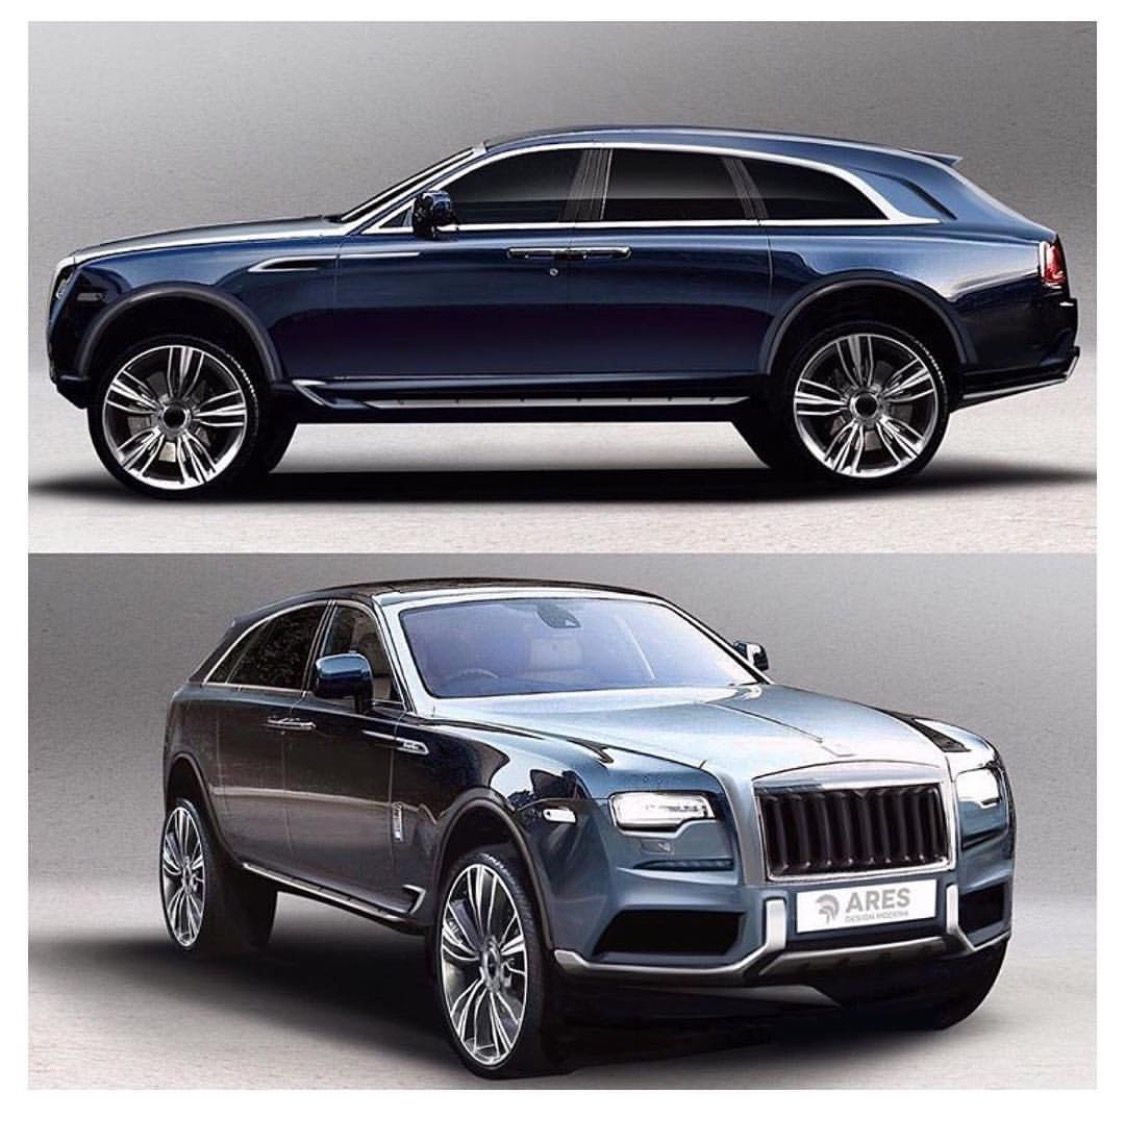 Luxury Cars: Rolls Royce, Royce